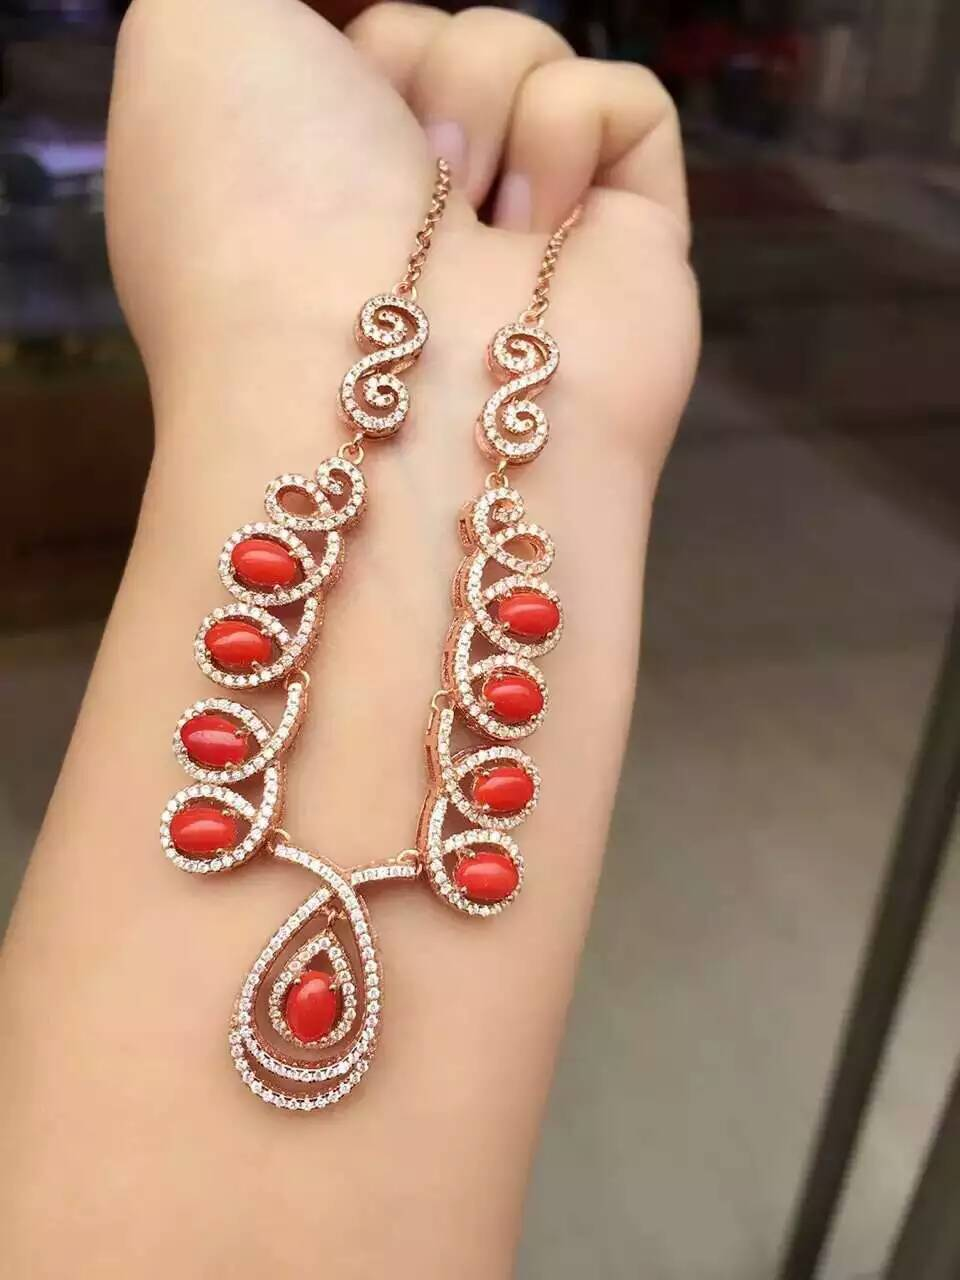 Natural Red Coral Necklace Natural Gemstone Pendant Necklace 925 sliver women Luxury water droplets engagement fine Jewelry